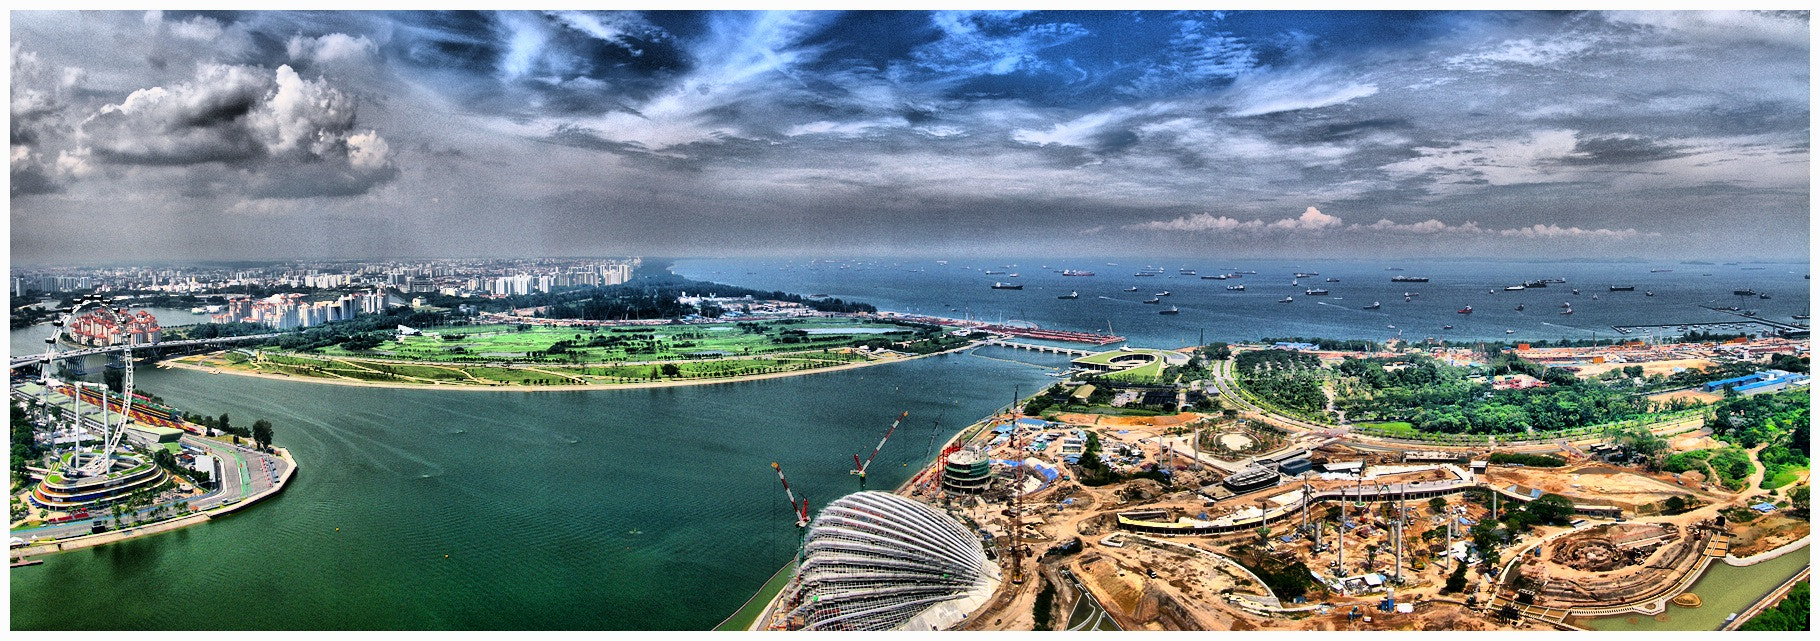 Photograph // CONSTRUCTION TIME AGAIN | SINGAPORE // by Richard Cawood on 500px